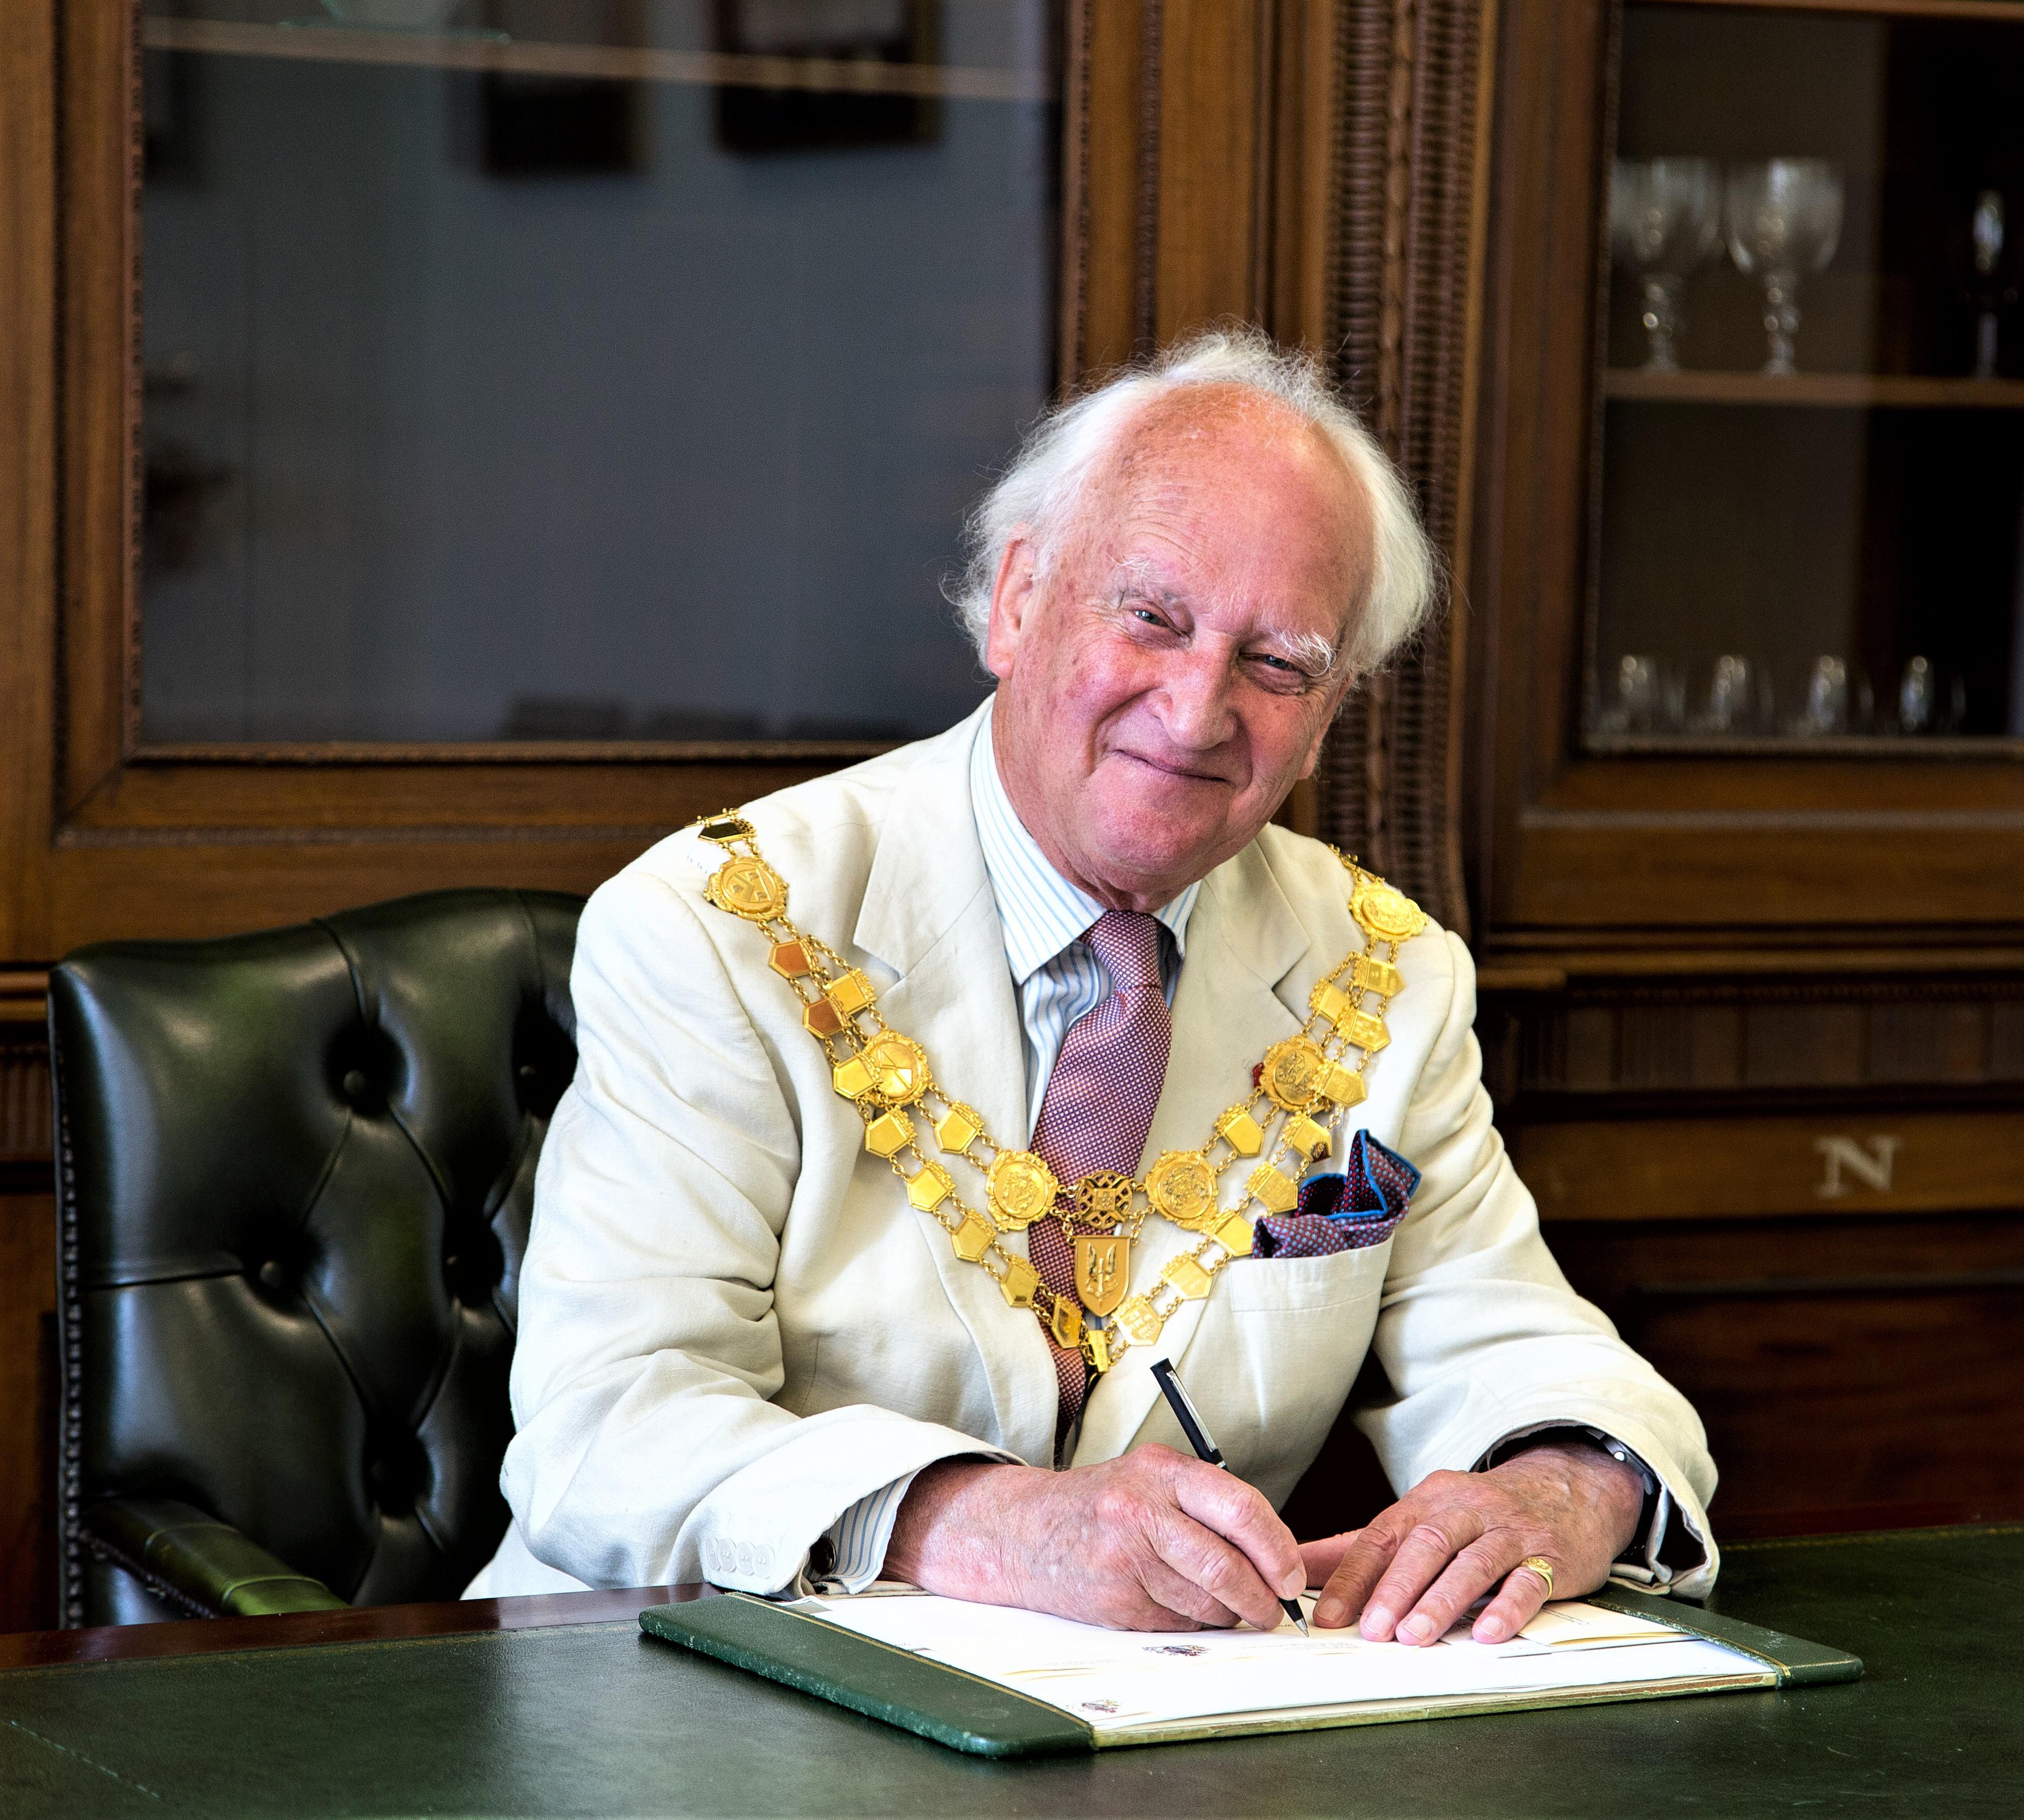 Chairman of the council, Sebastian Bown, sat as his desk in the chairmans office